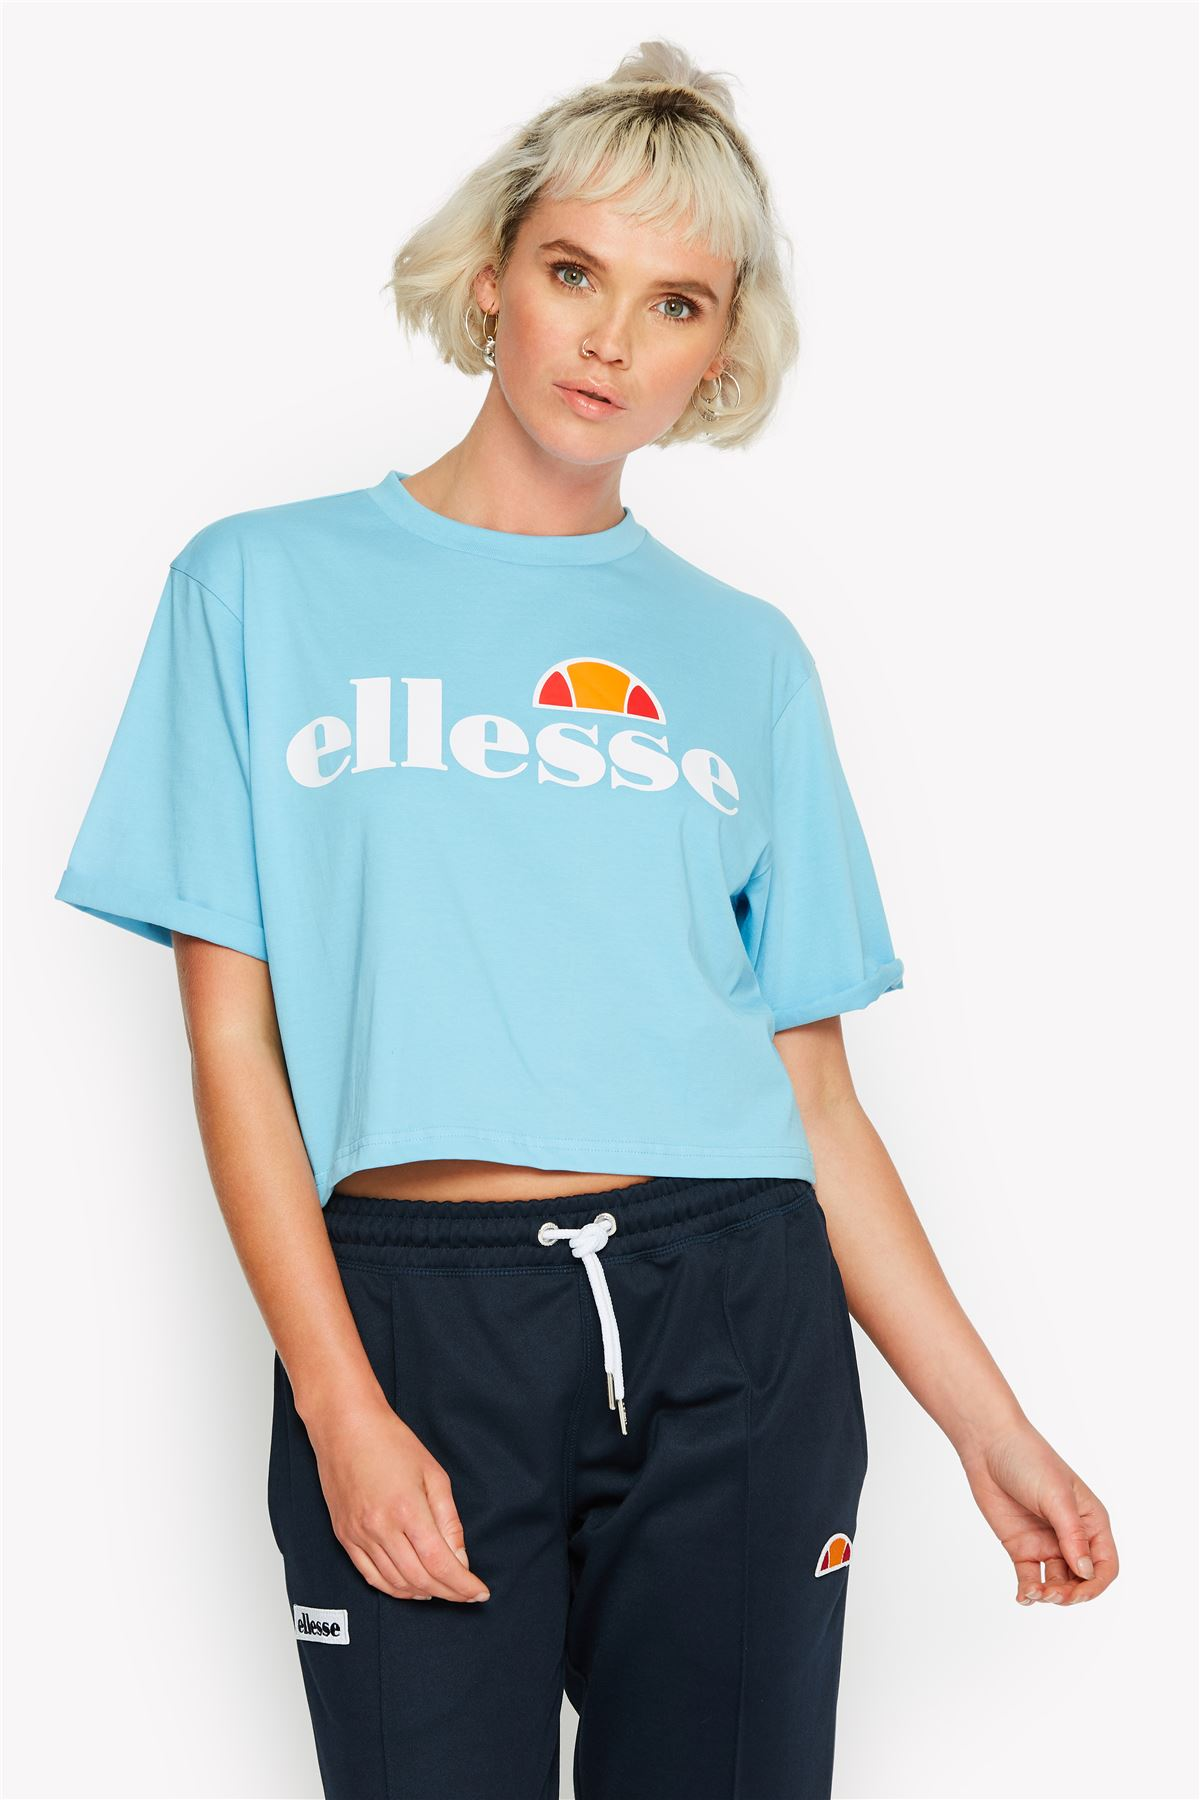 Ellesse-End-of-Line-Clearance-Sale-Bargain-Womens-Tops-T-Shirts-Free-UK-Ship thumbnail 6